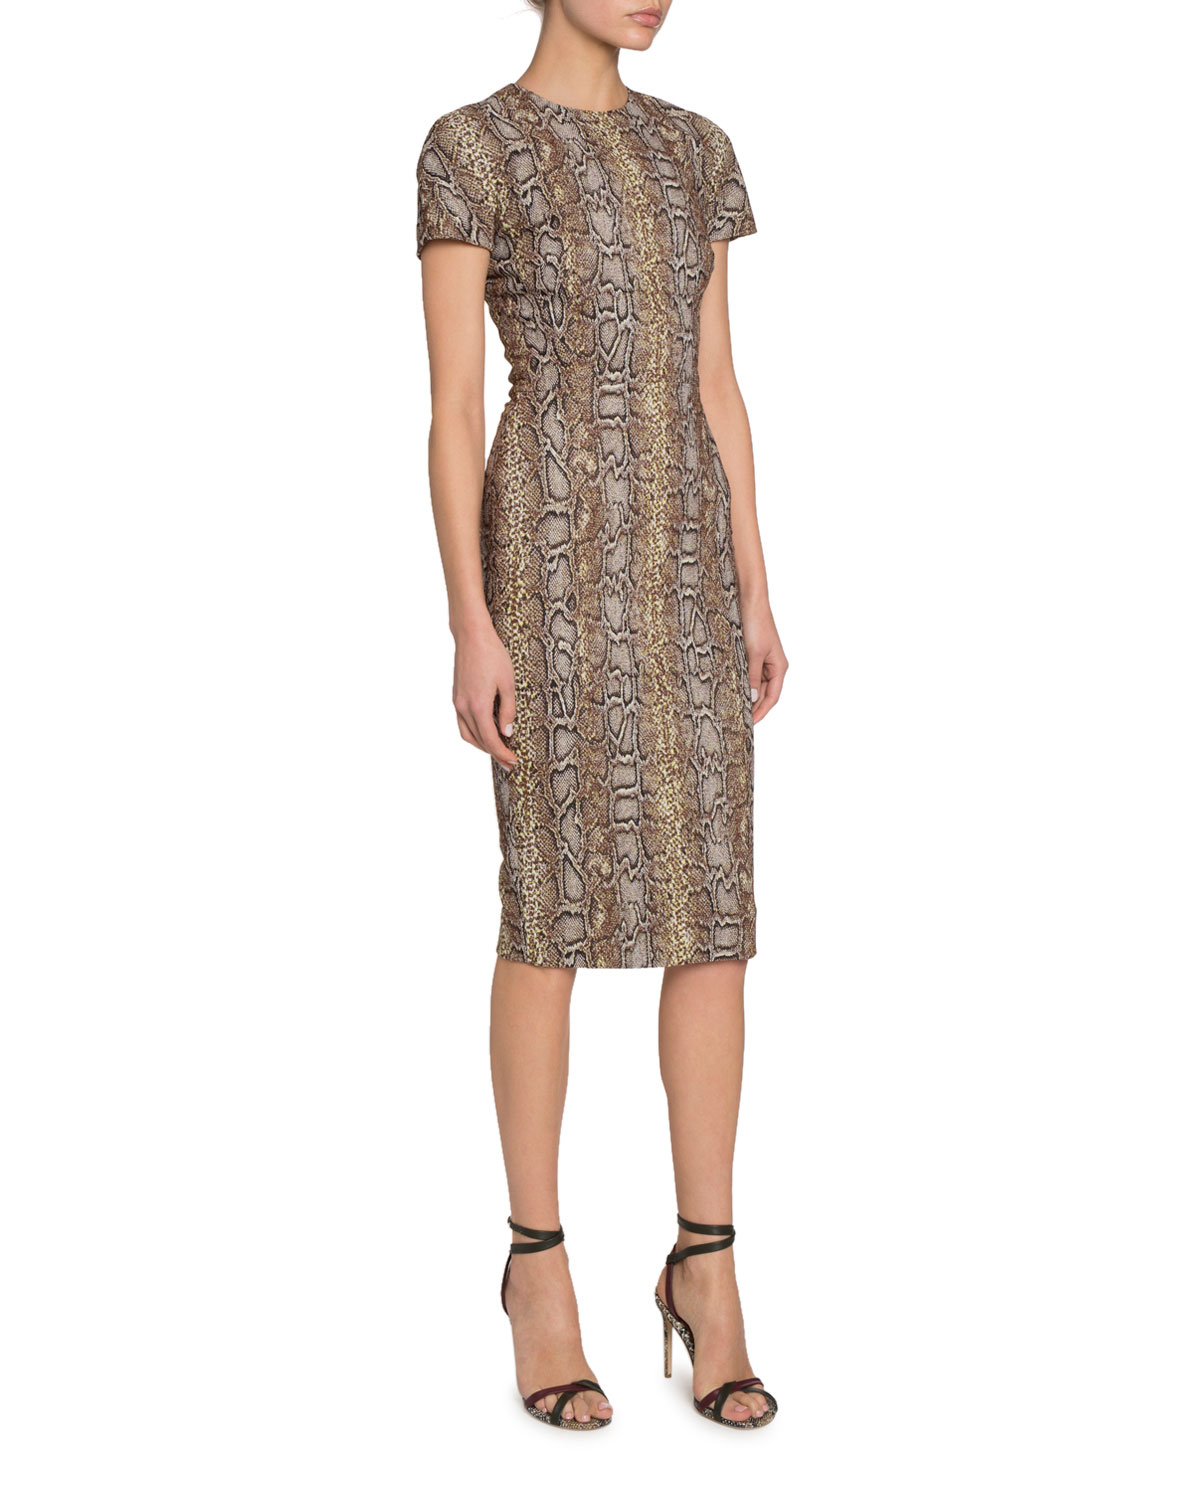 Victoria Beckham Dresses PYTHON PRINT FITTED T-SHIRT DRESS